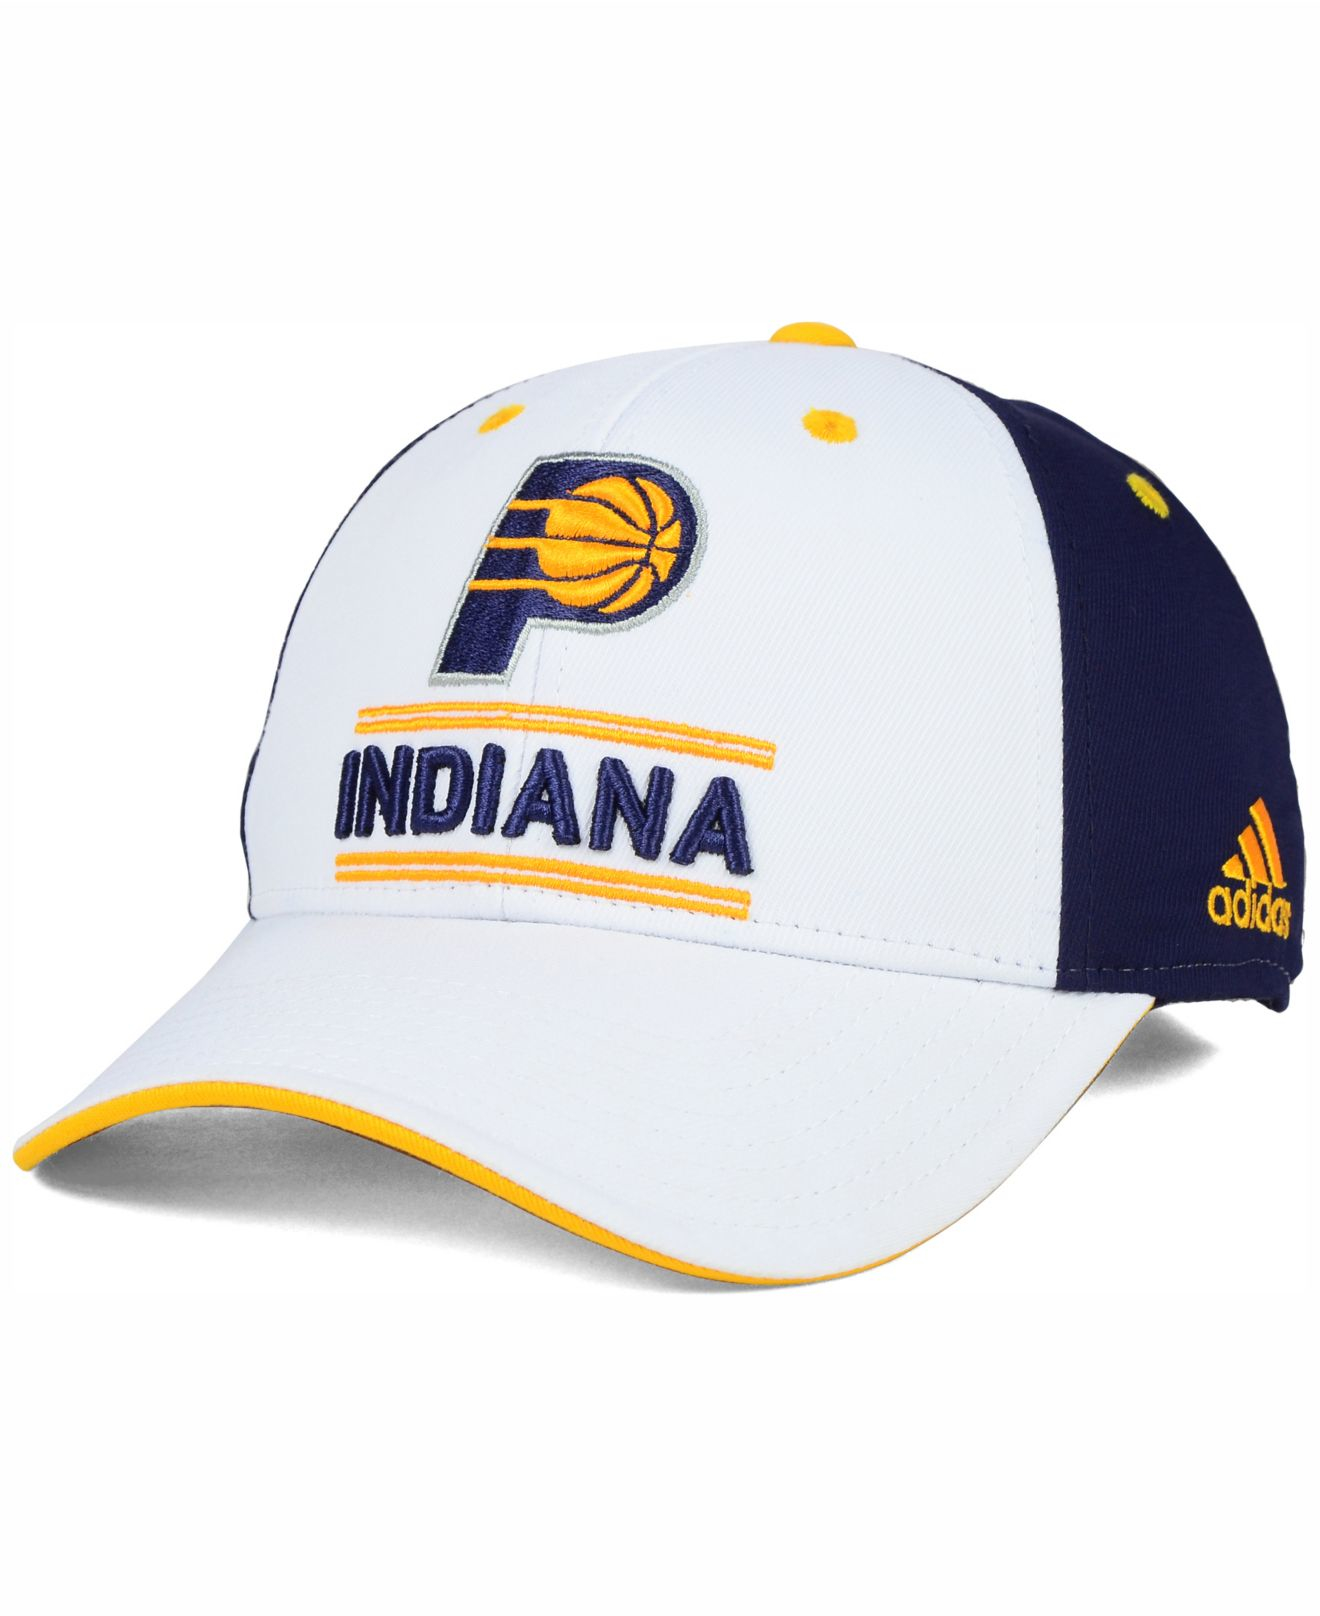 huge discount 5bbd7 43534 adidas Originals Indiana Pacers Playmaker Adjustable Cap in Blue for ...